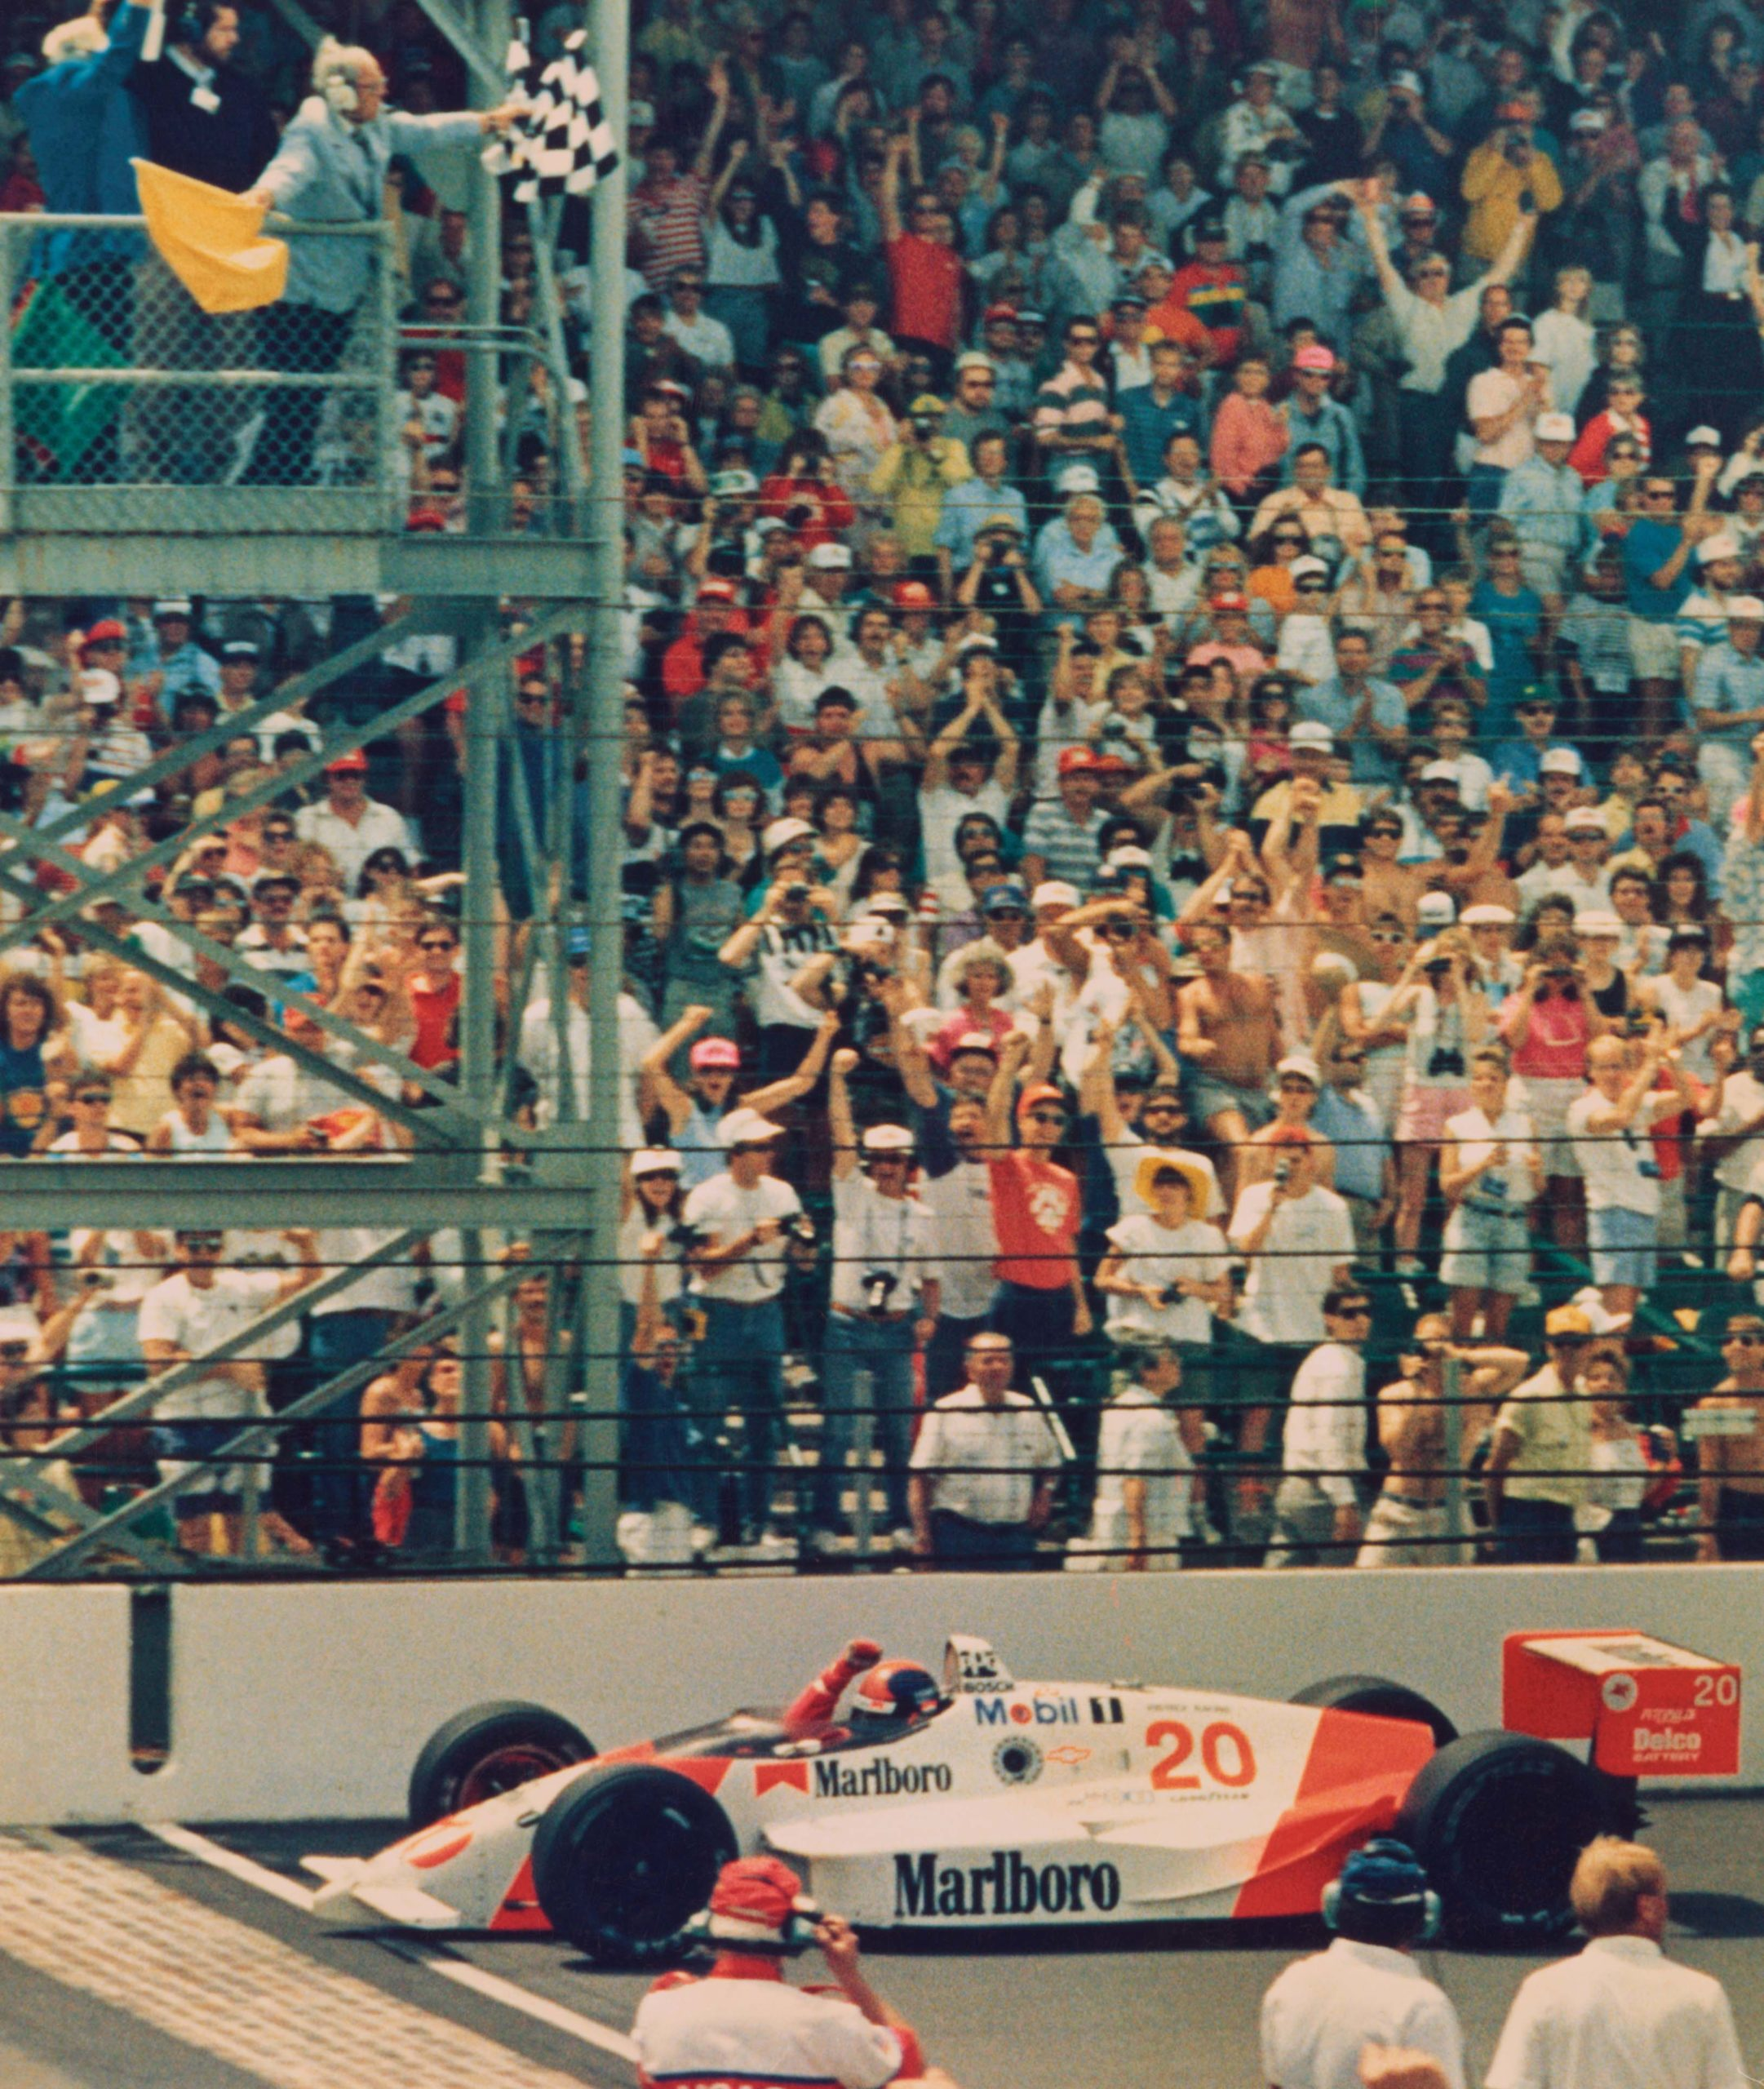 Emerson-Fittipaldi-crosses-the-line-to-win-the-1989-Indy-500